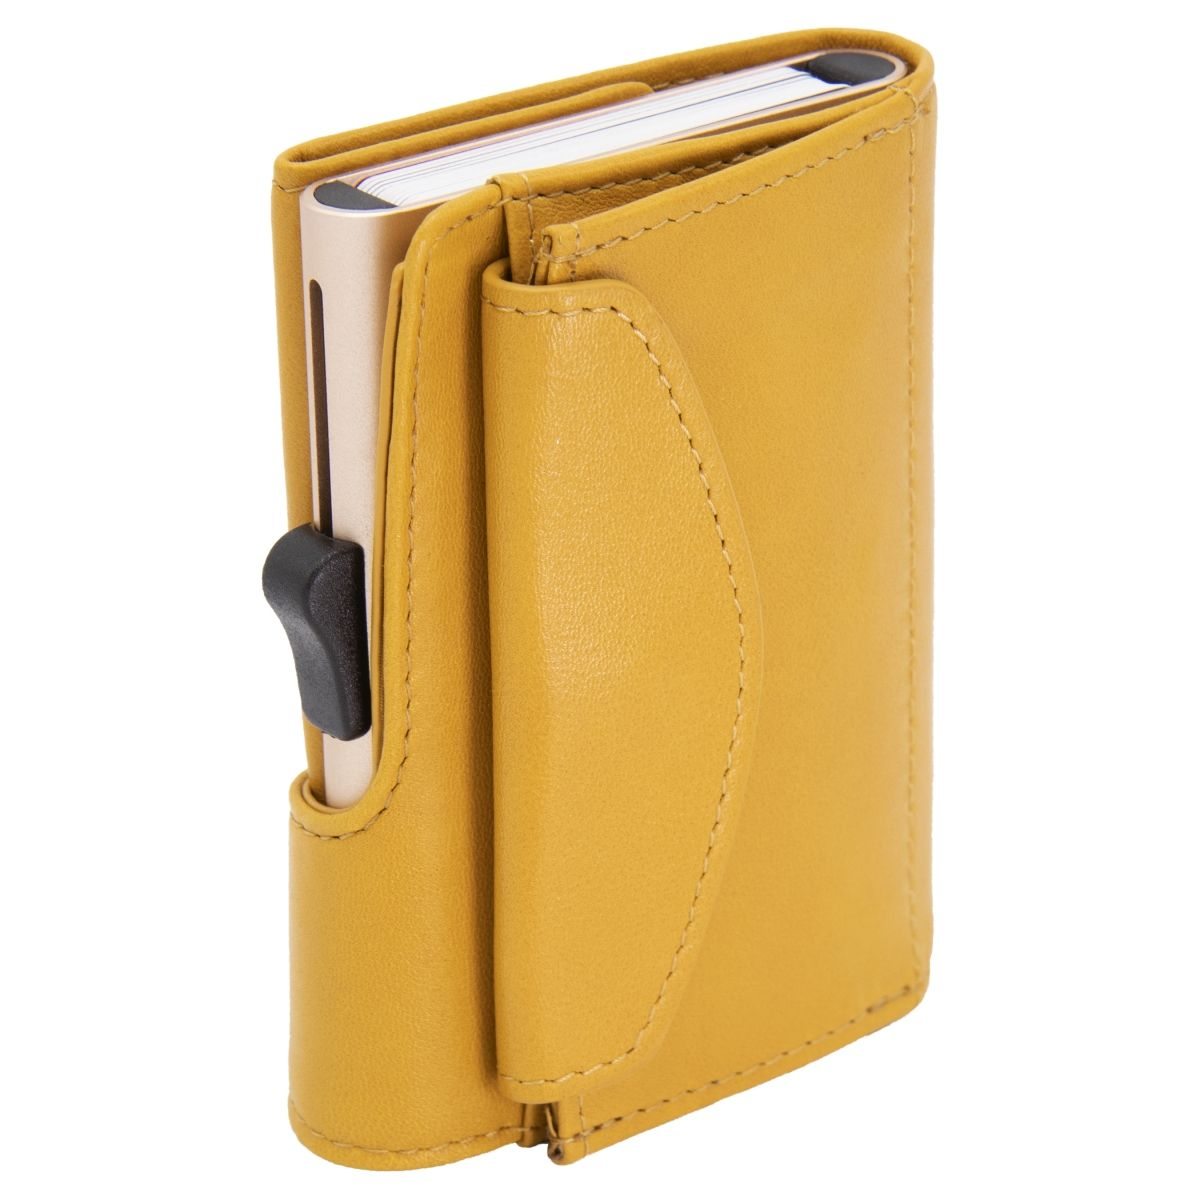 C-Secure XL Aluminum Wallet with Genuine Leather and Coins Pocket - Solis Yellow